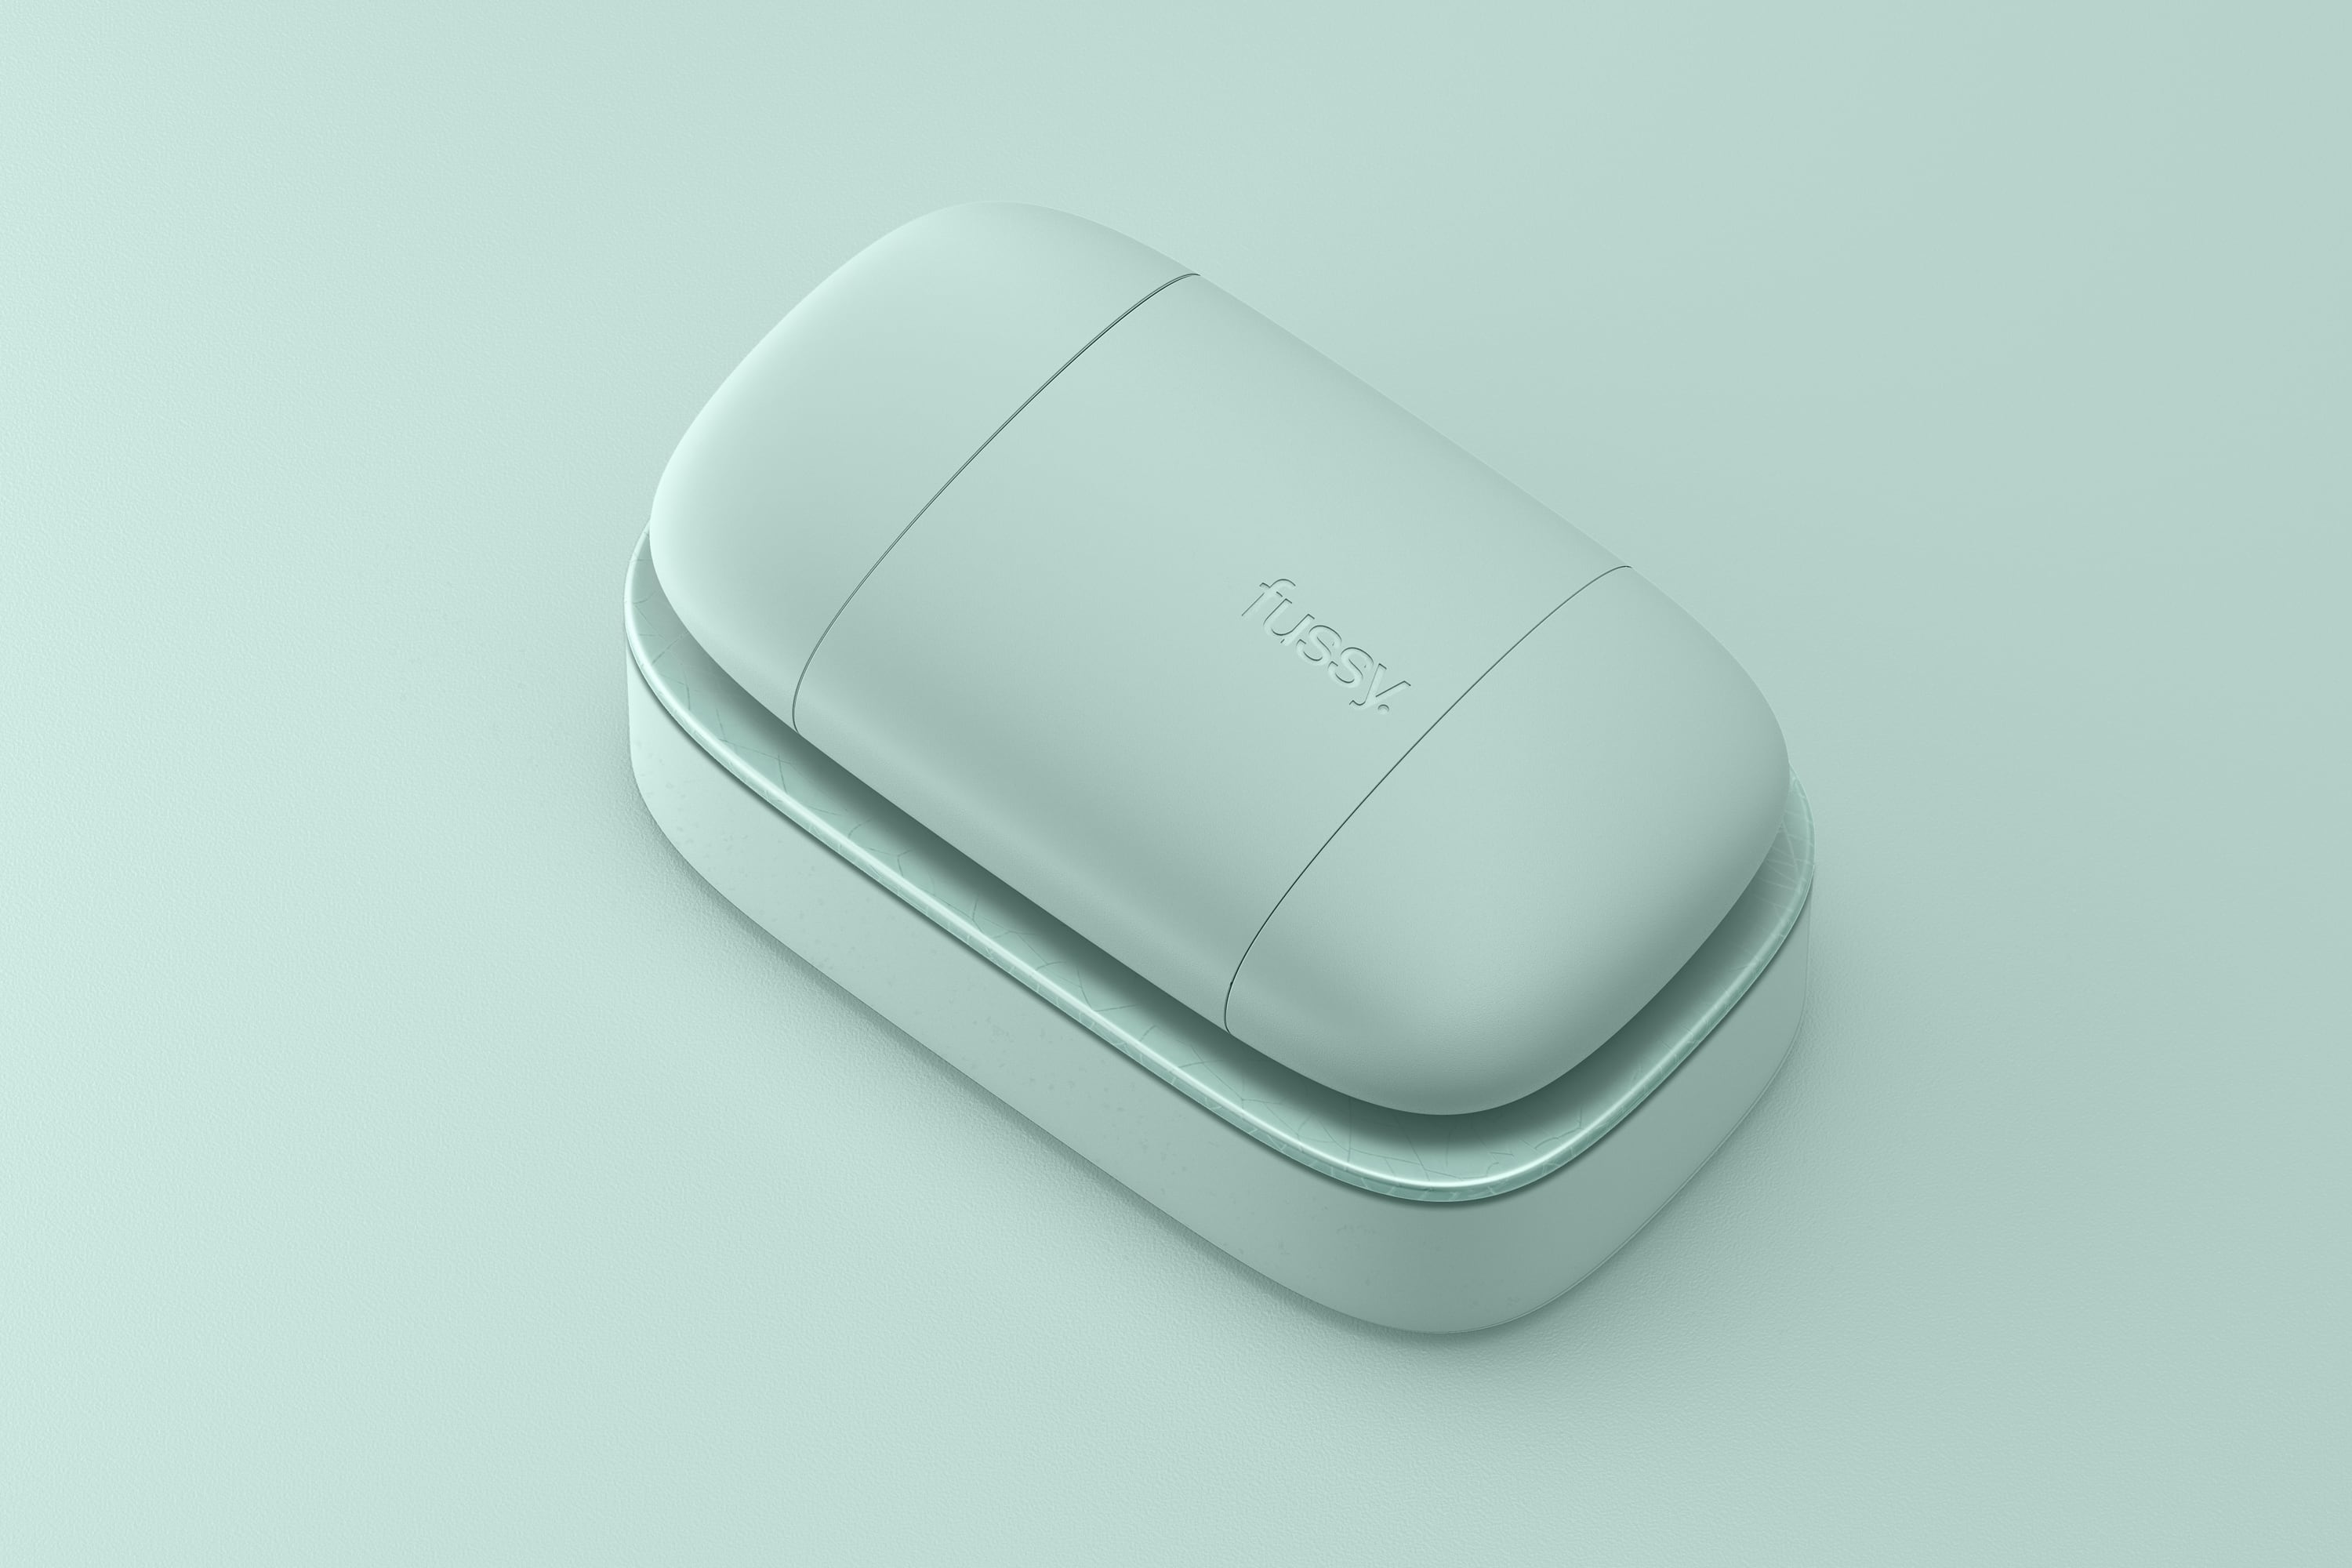 Blond-Design-Agency-Cosmetics-Packaging-Sustainable-Eco-Deodorant-Dish-03